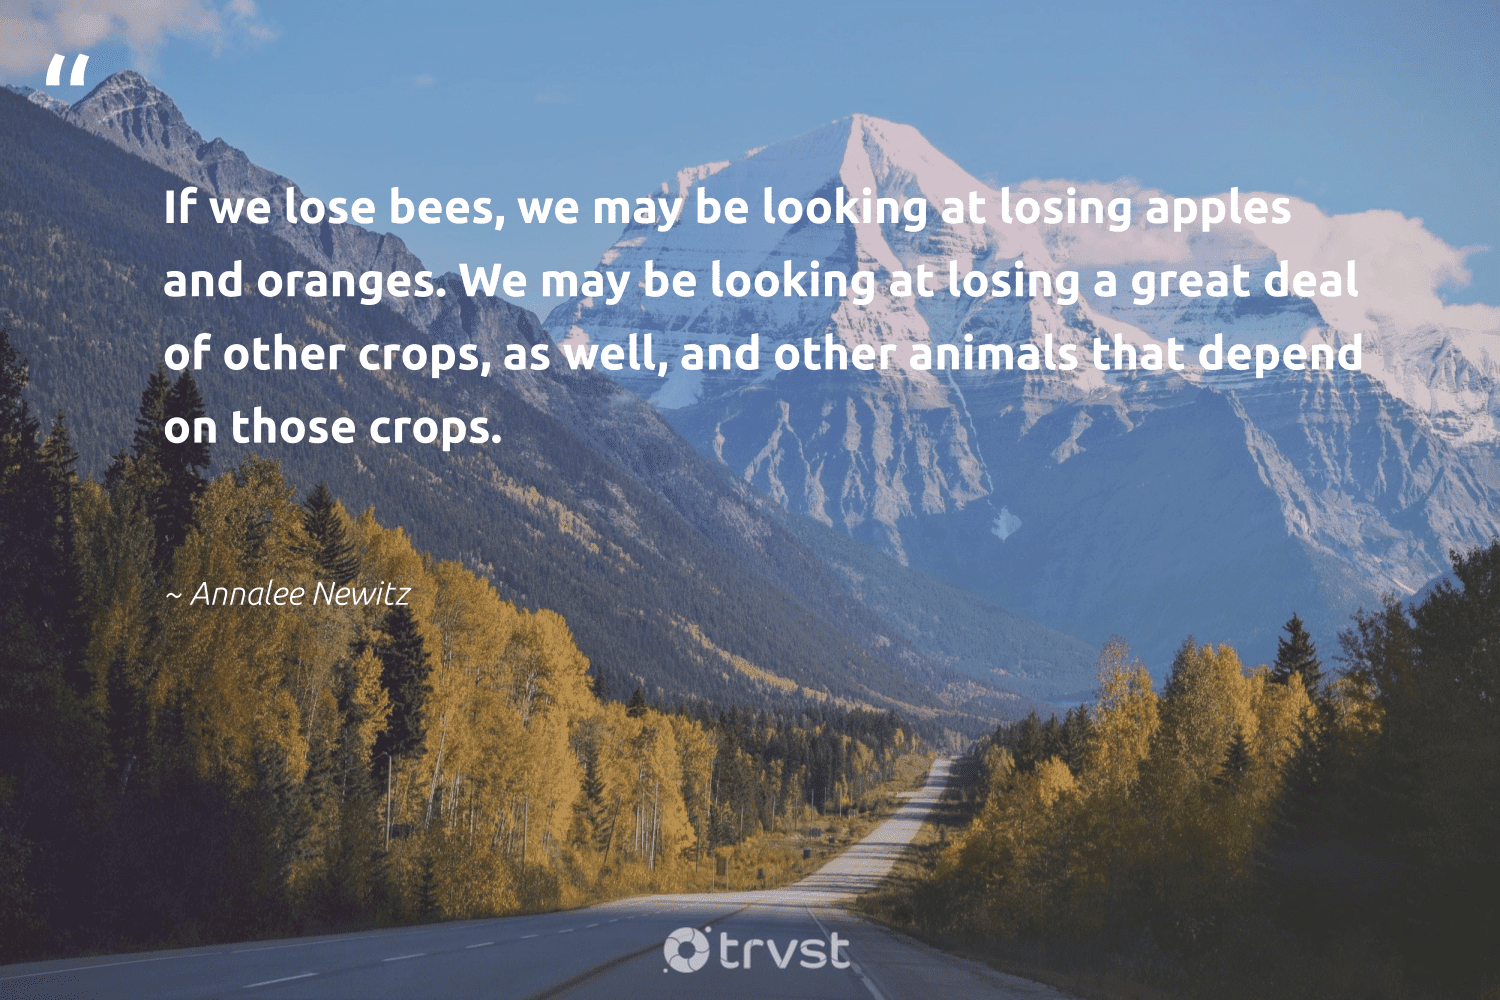 """""""If we lose bees, we may be looking at losing apples and oranges. We may be looking at losing a great deal of other crops, as well, and other animals that depend on those crops.""""  - Annalee Newitz #trvst #quotes #animals #bees #animallovers #flowers #biology #collectiveaction #animal #pollinators #nature #changetheworld"""